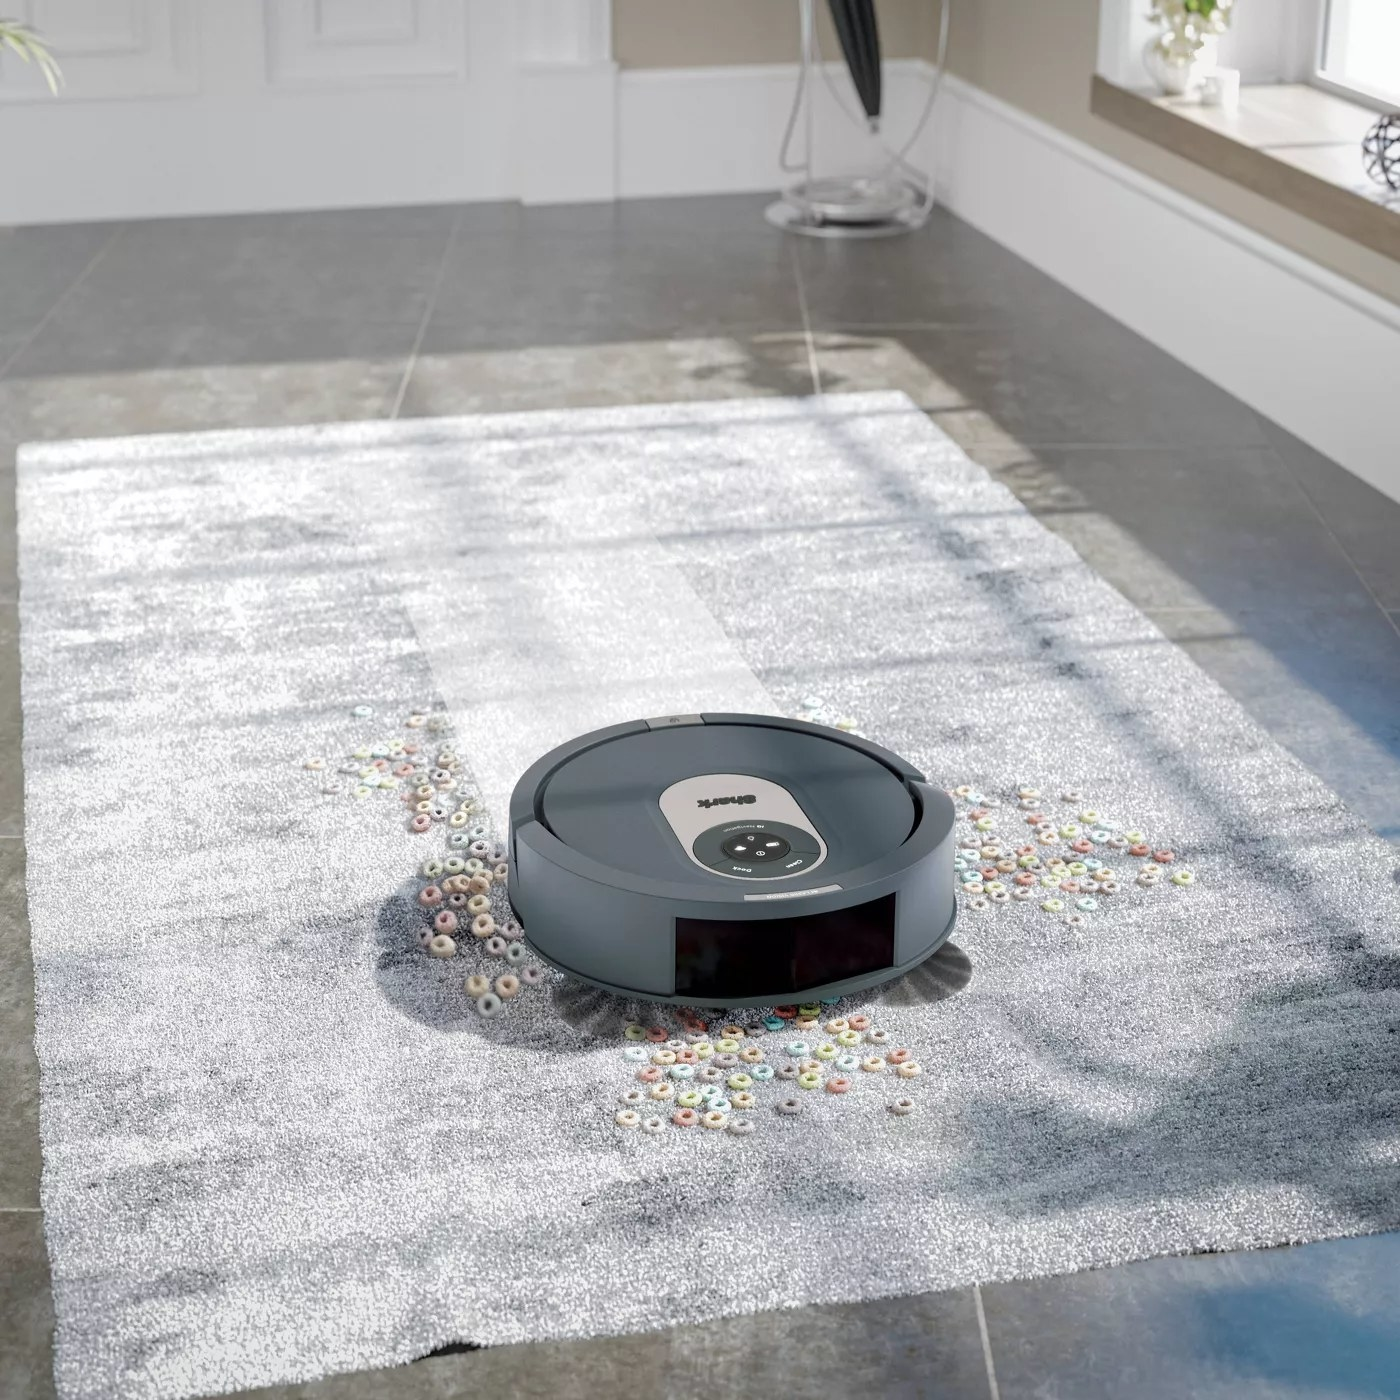 The Shark robot vacuum cleaning up cereal